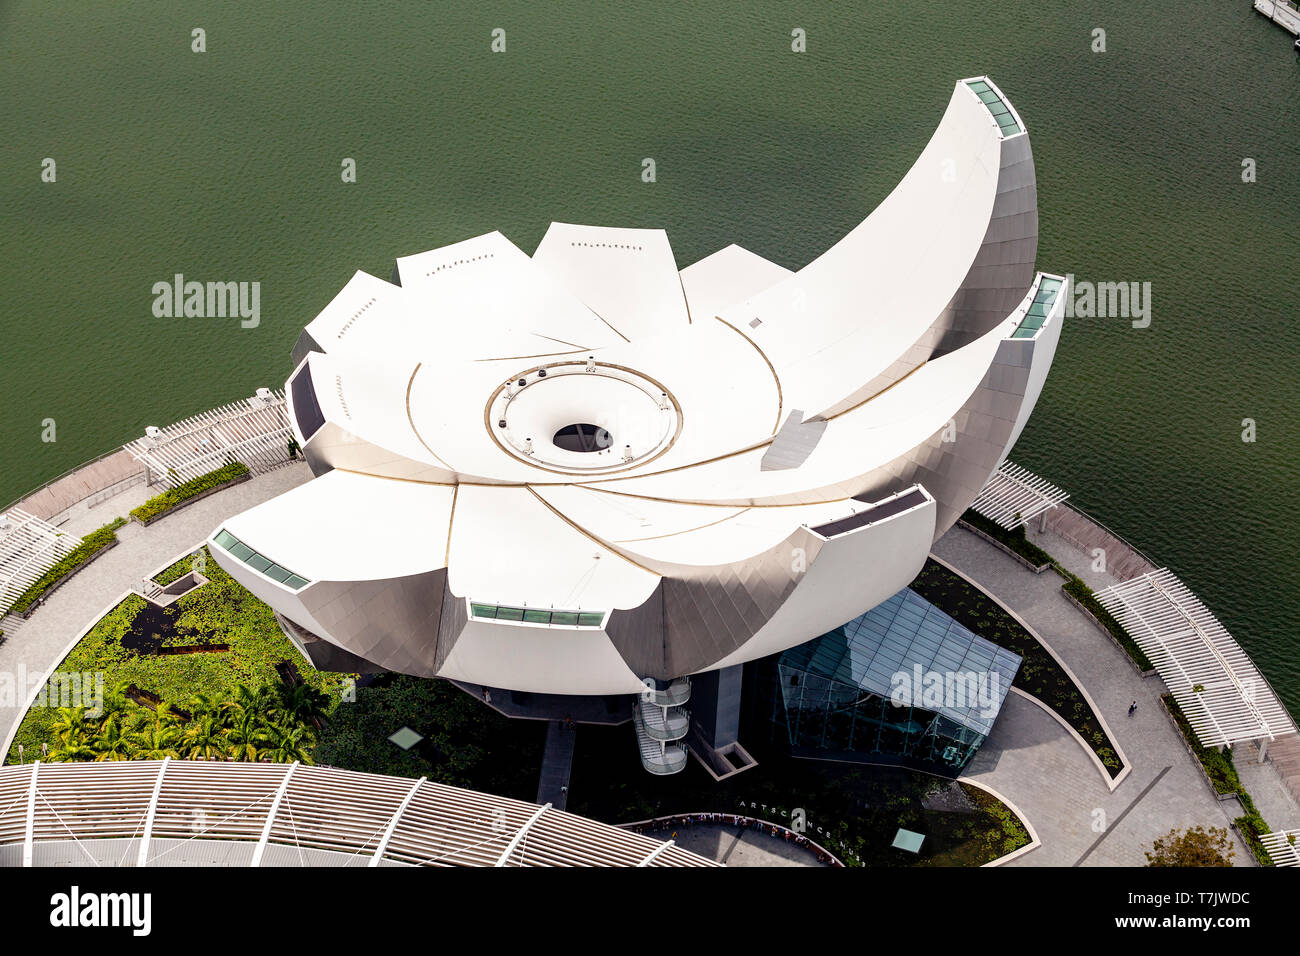 An Aerial View Of The ArtScience Museum, Singapore, South East Asia Stock Photo